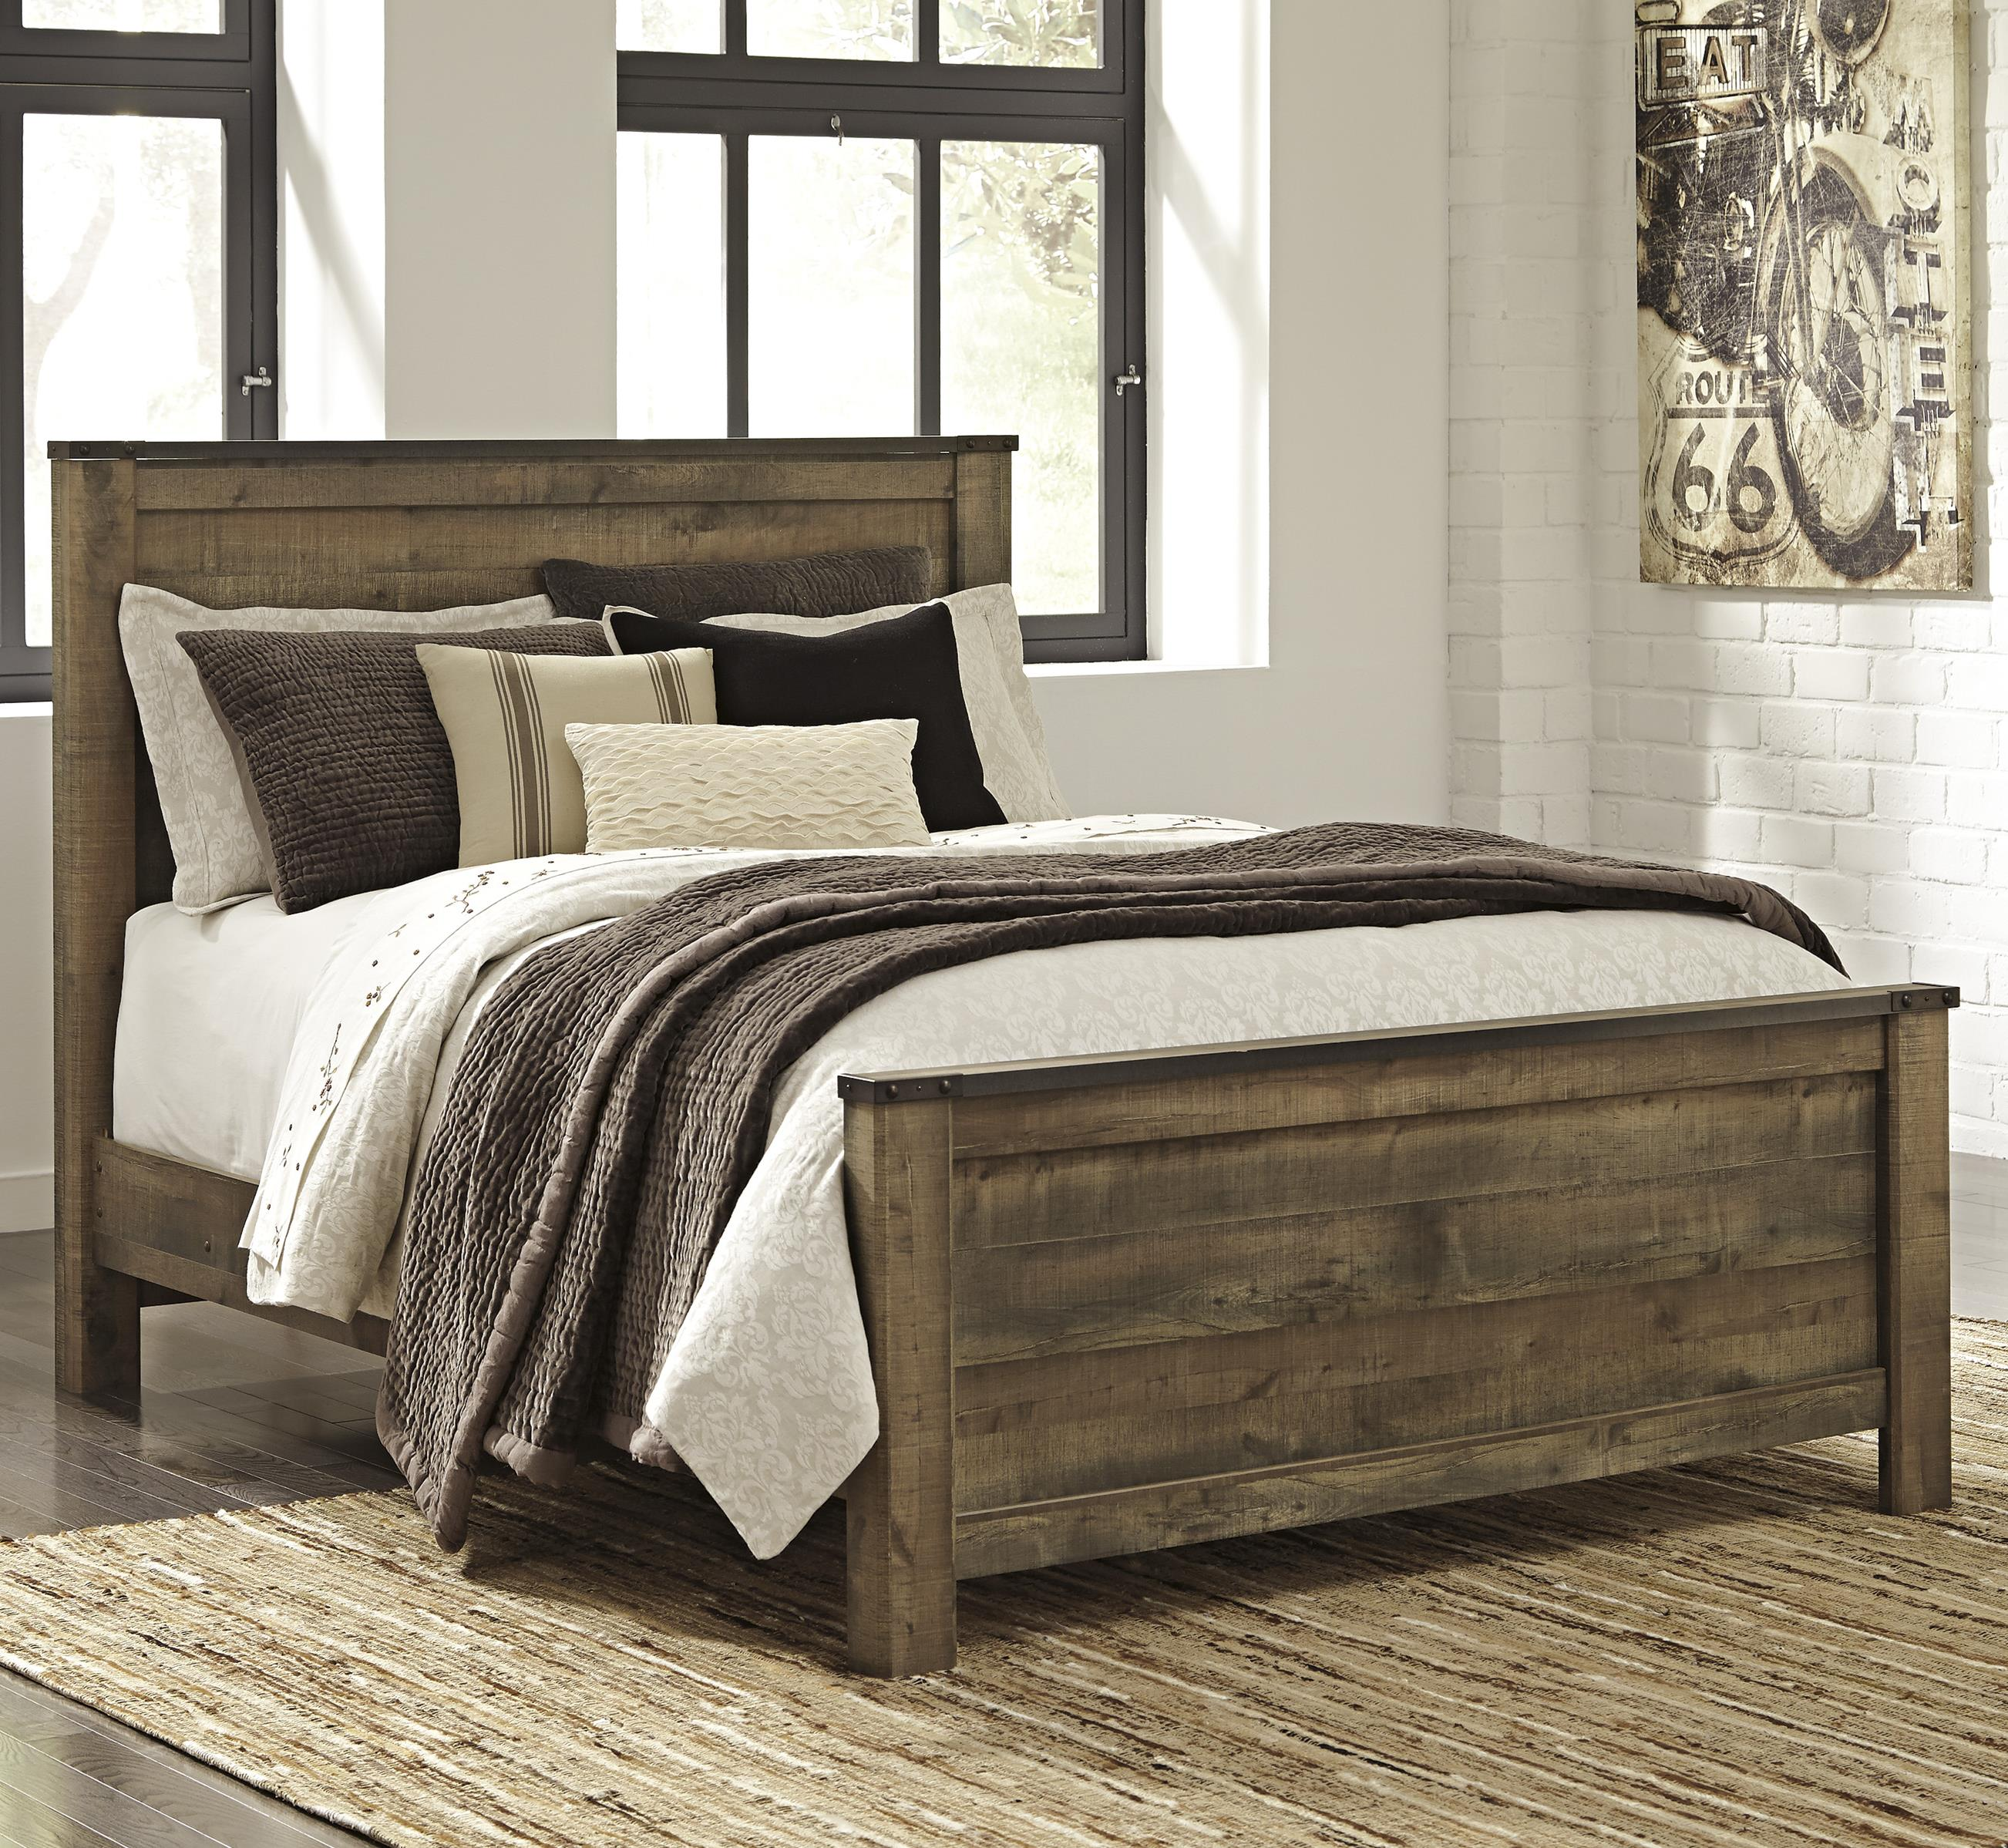 Rustic Look Queen Panel Bed By Signature Design By Ashley